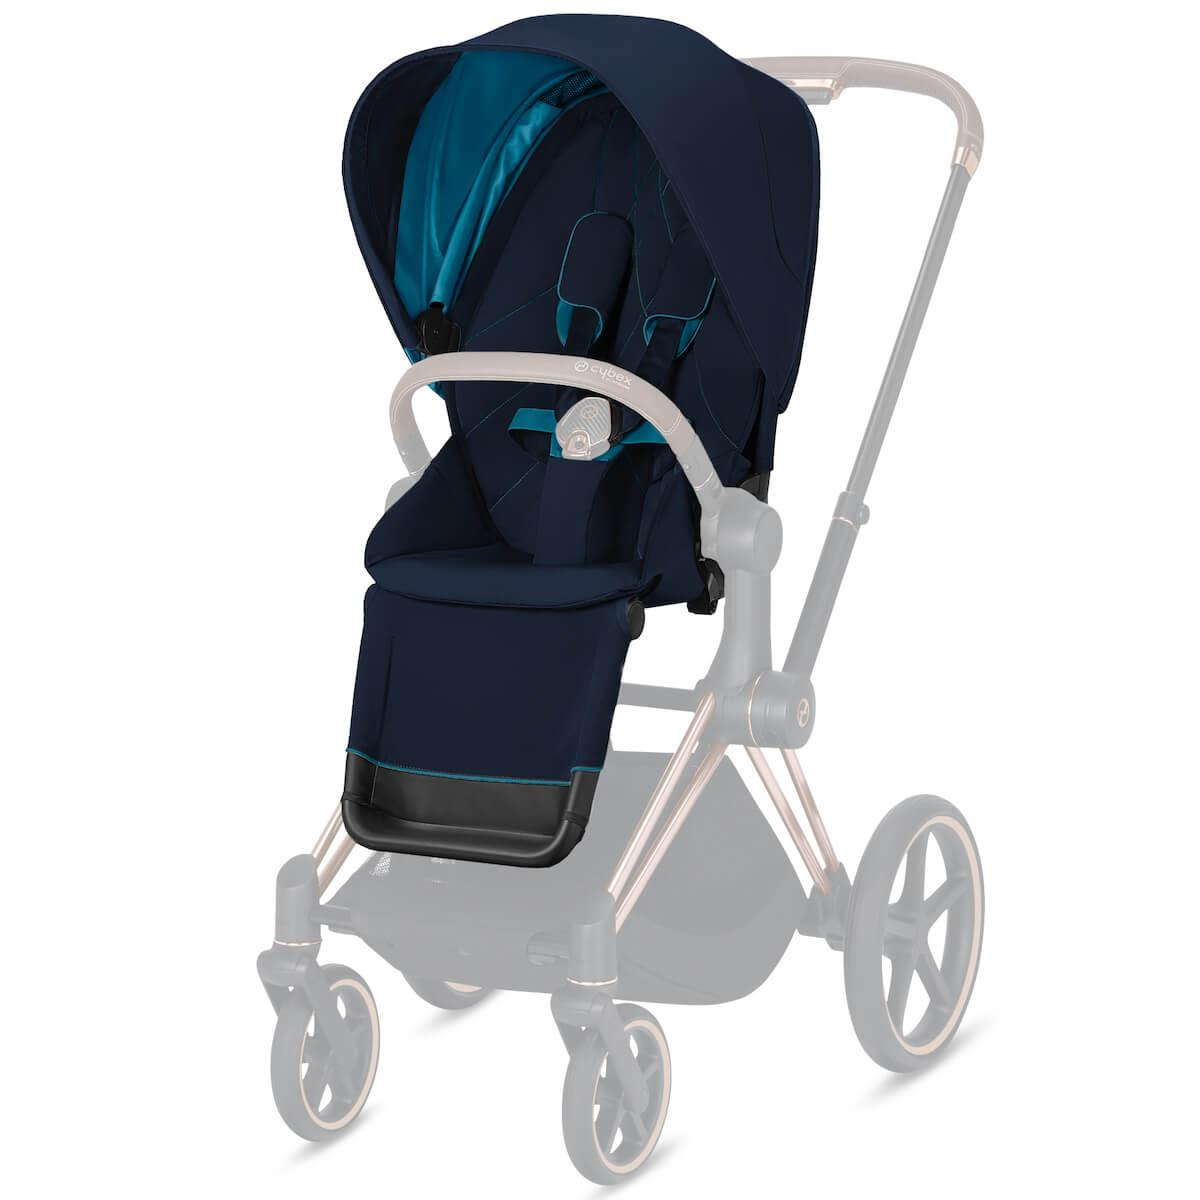 Assise-habillage poussette PRIAM Cybex Nautical blue-navy blue